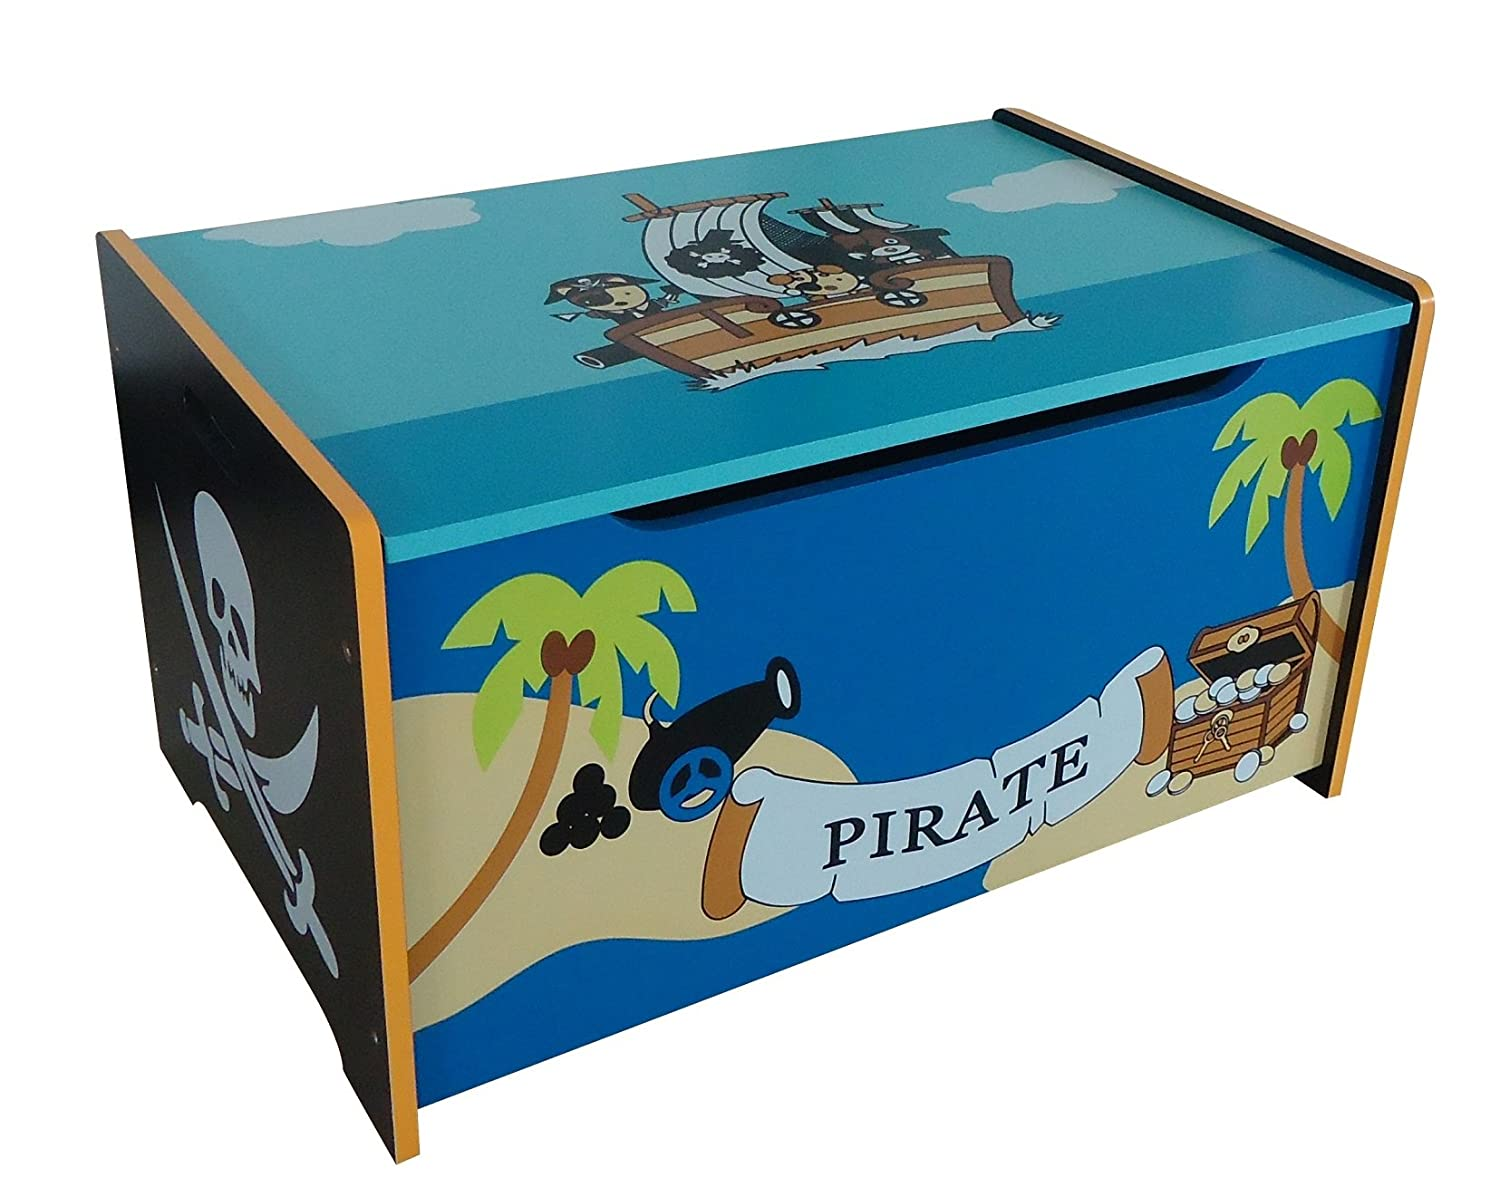 pirate themed kids childrens wooden toy box bench storage box